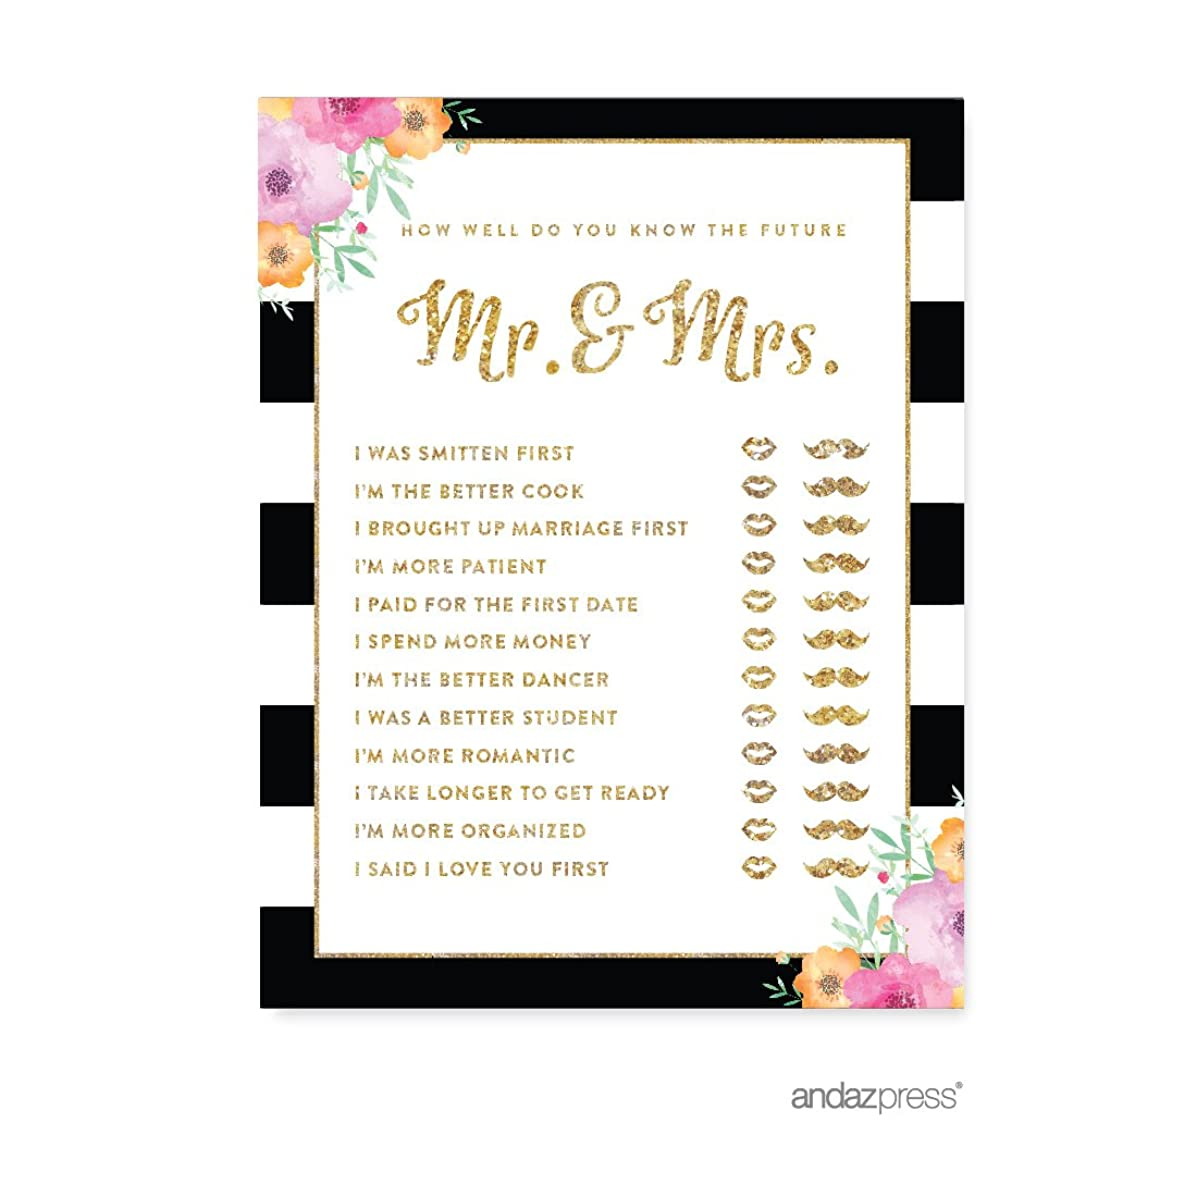 Andaz Press Floral Gold Glitter Print Wedding Collection, How Well Do You Know the Future Mr. & Mrs. He Said She Said Game Cards, 20-Pack